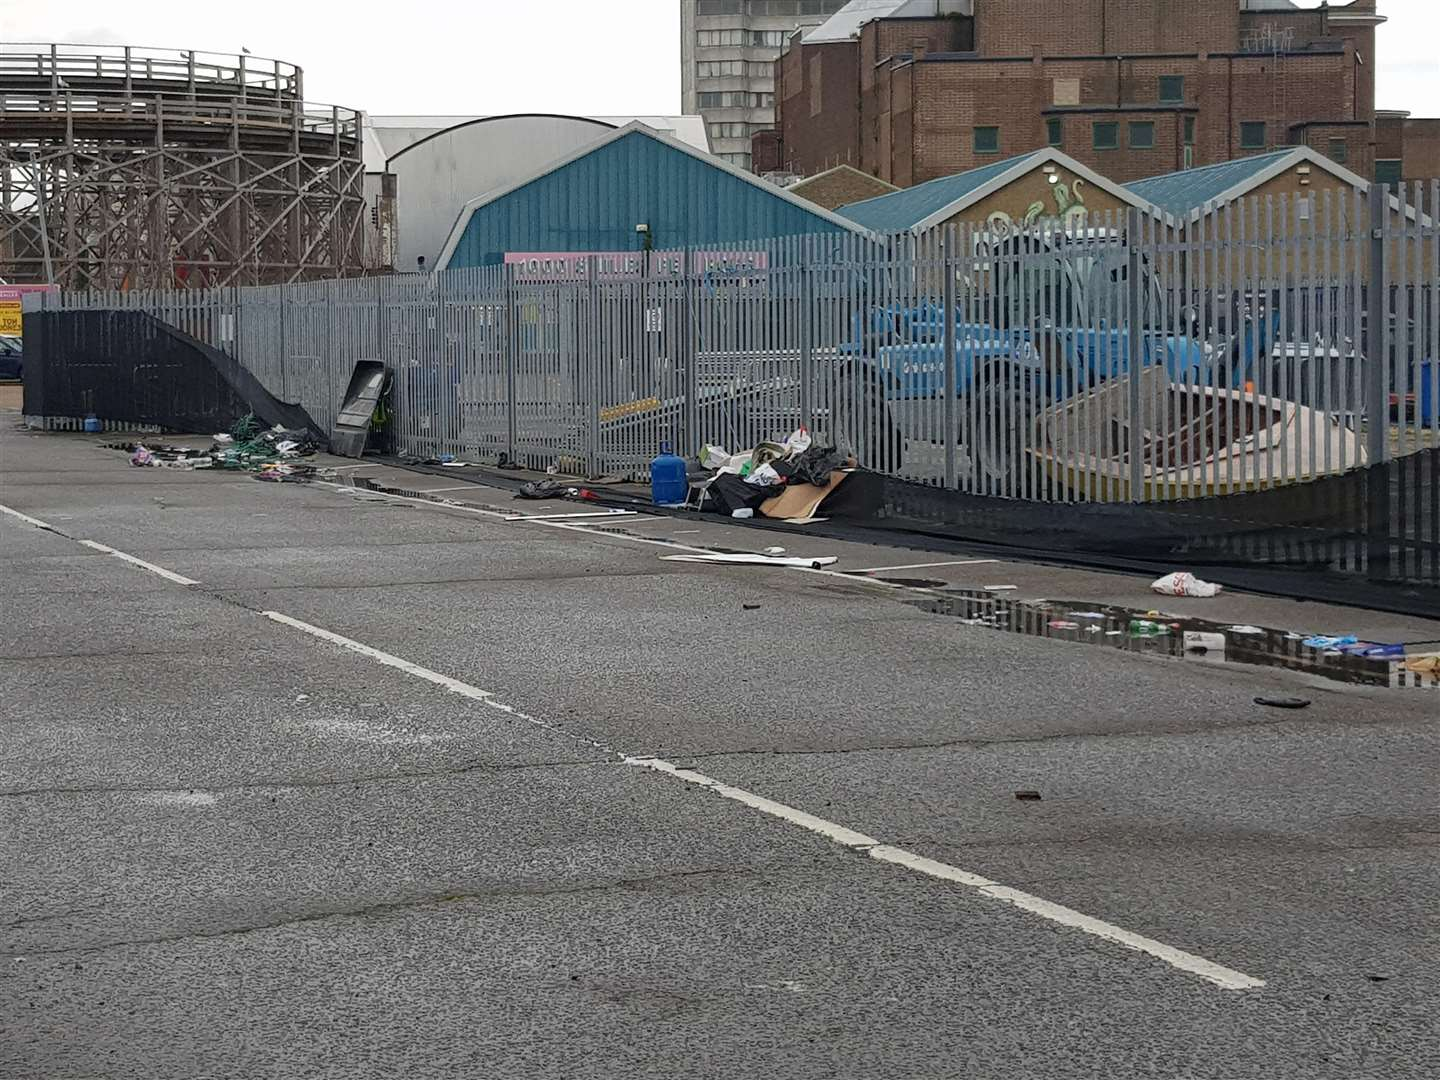 Residents and business were angry at the amount of rubbish and human waste reportedly at the site in Margate